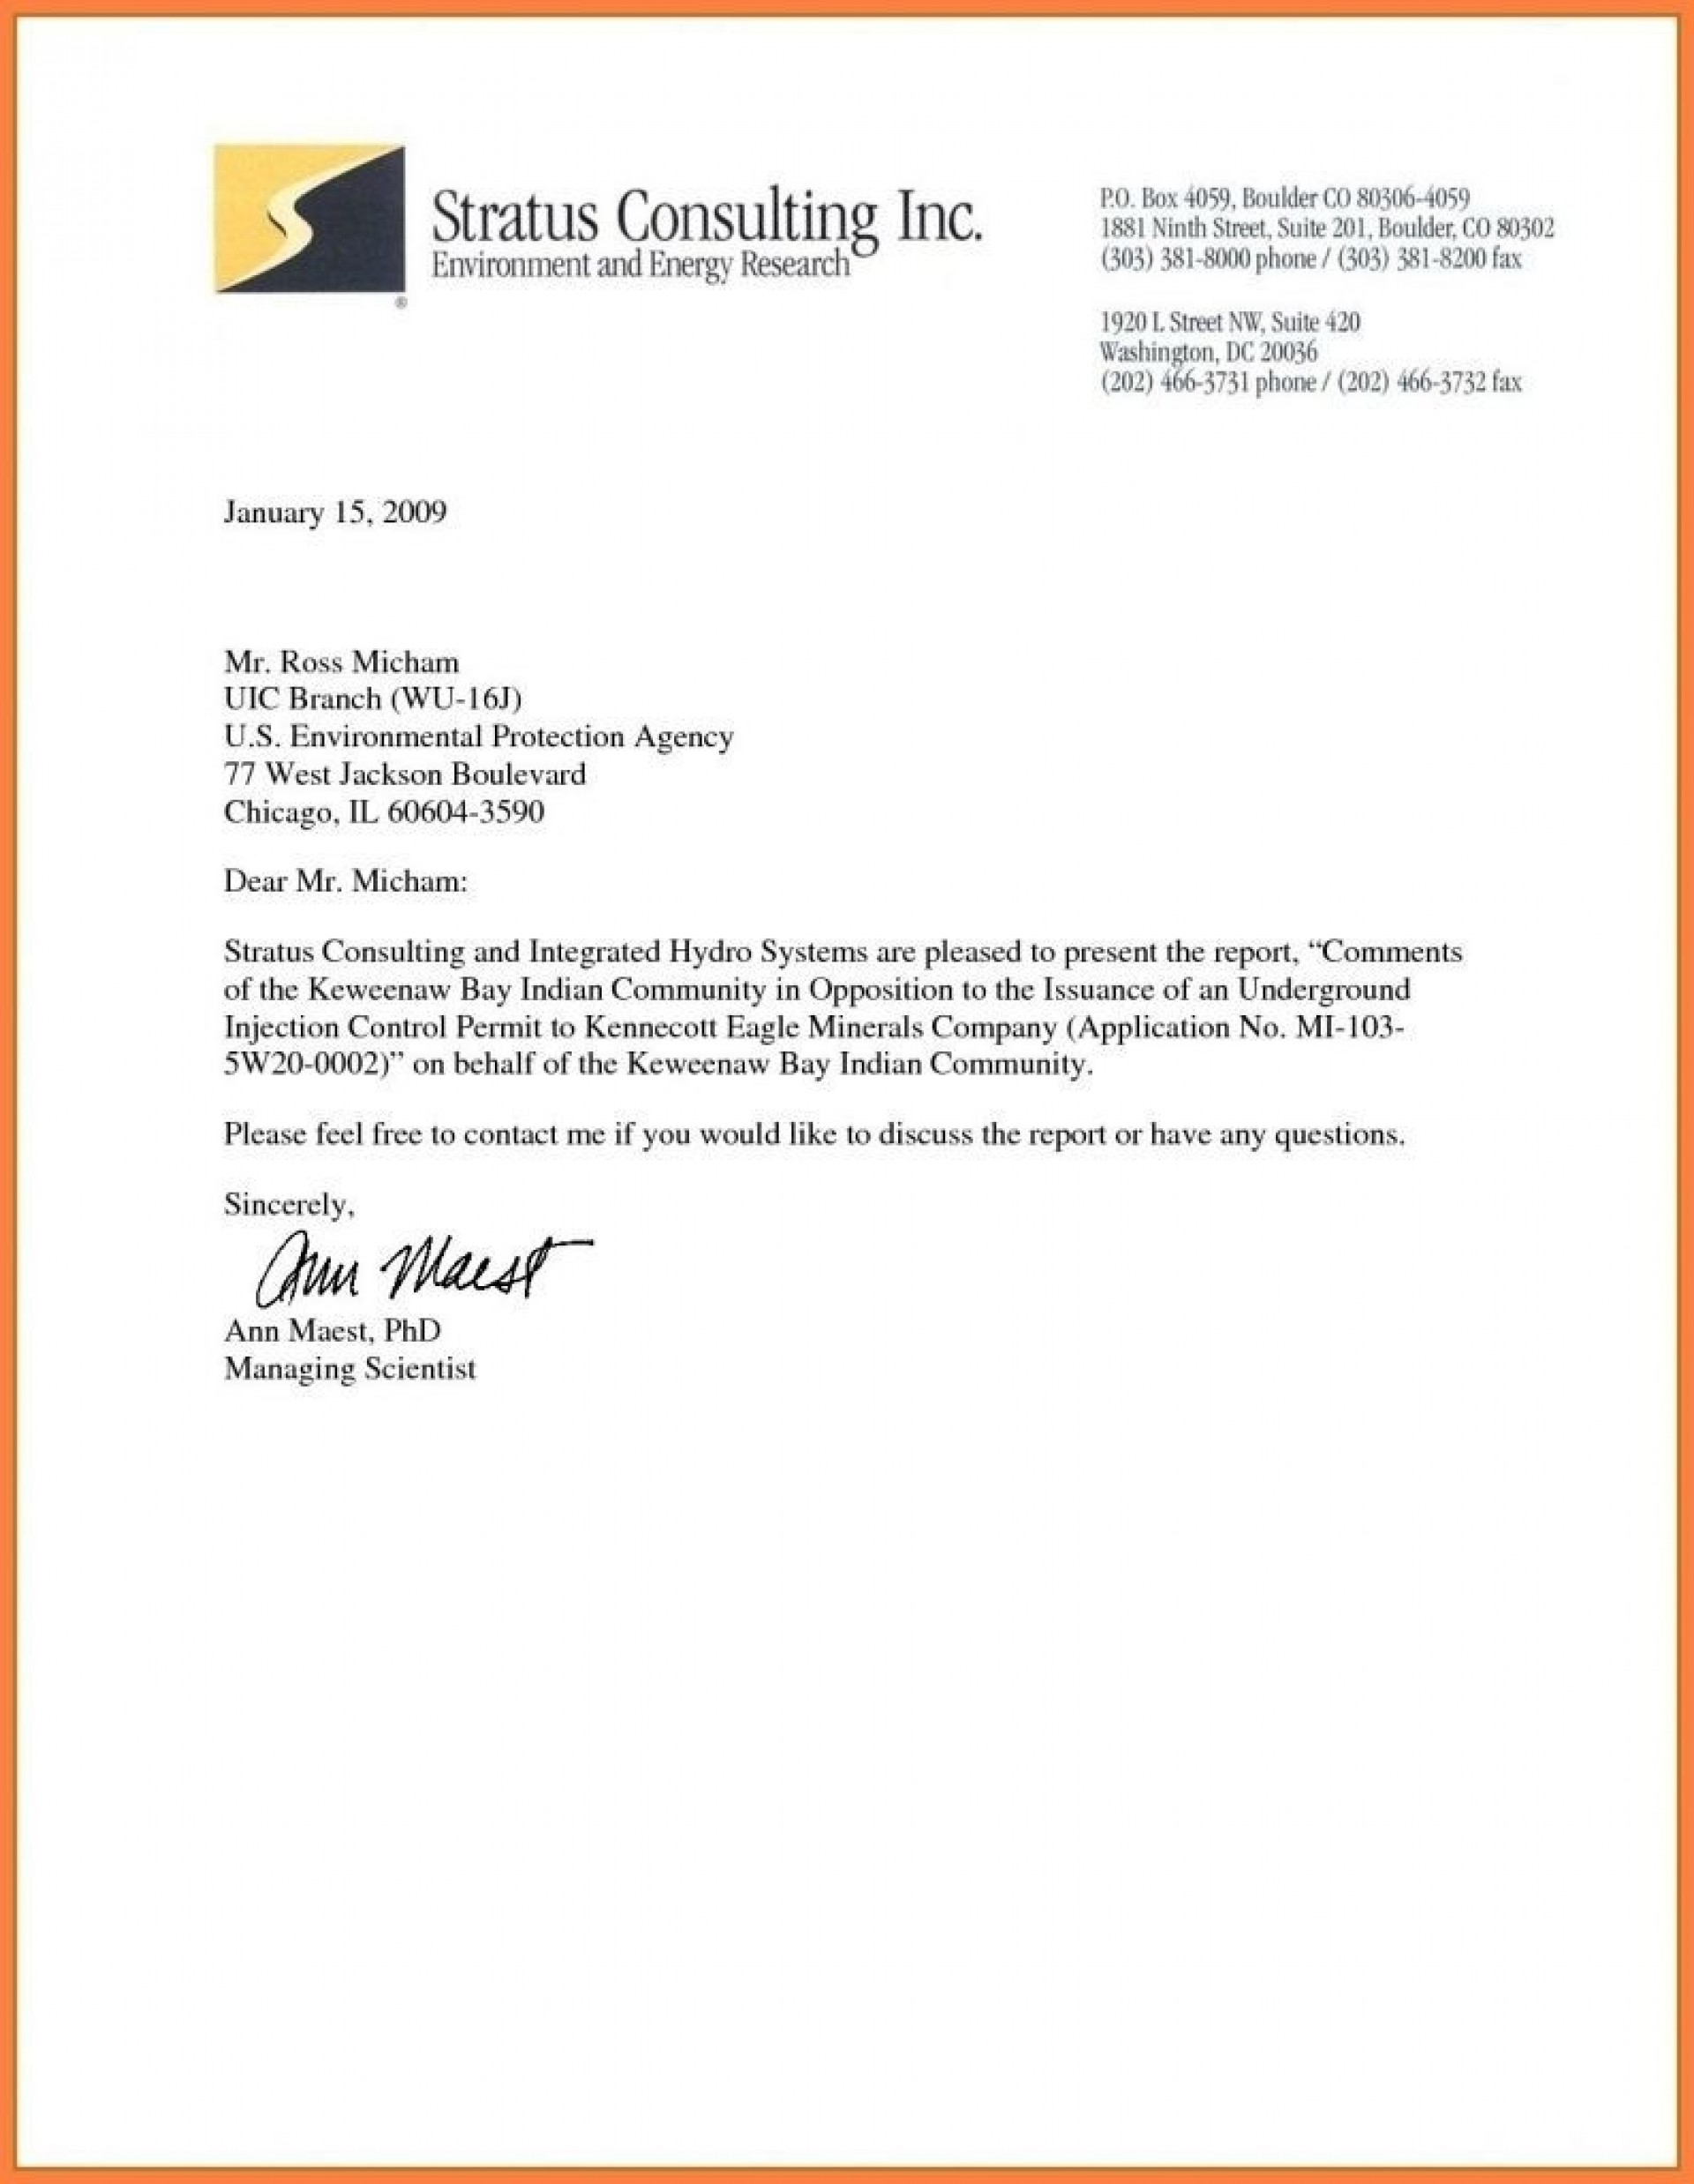 002 Awful Formal Busines Letter Template Image  Pdf Australia Format1920